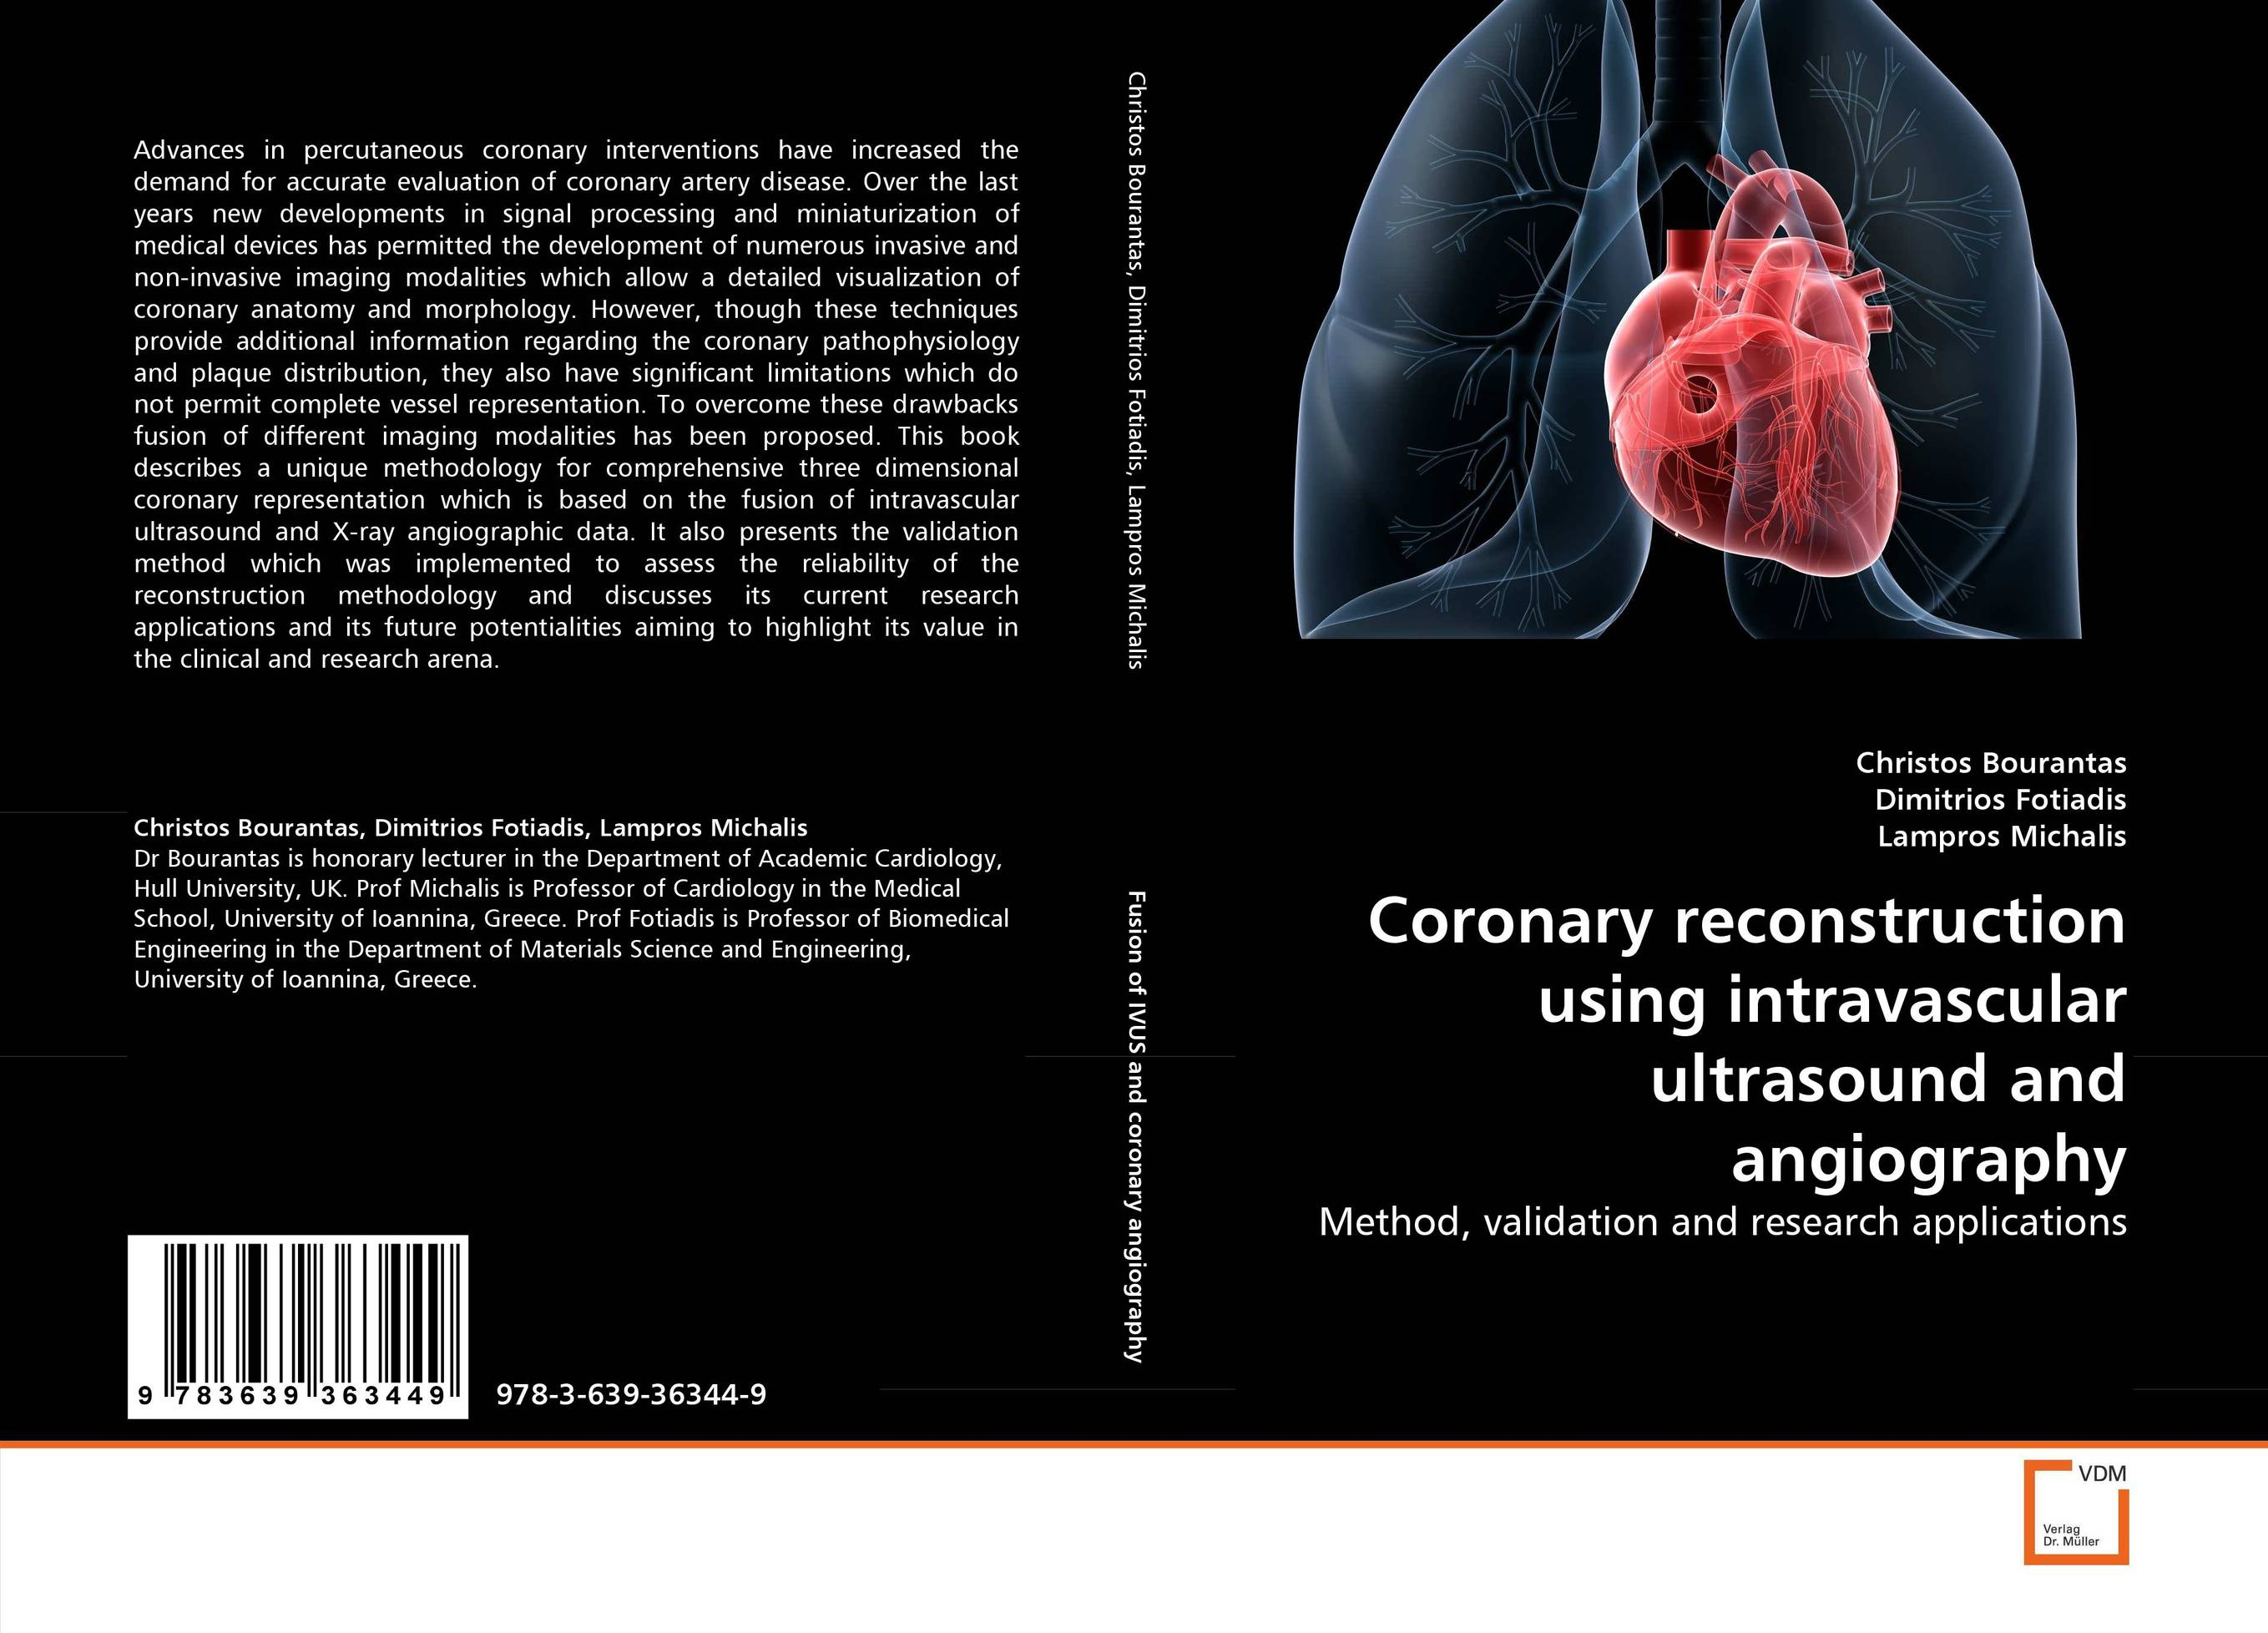 Coronary reconstruction using intravascular ultrasound and angiography repacholi essentials of medical ultrasound – a p ractintro to the principles etc